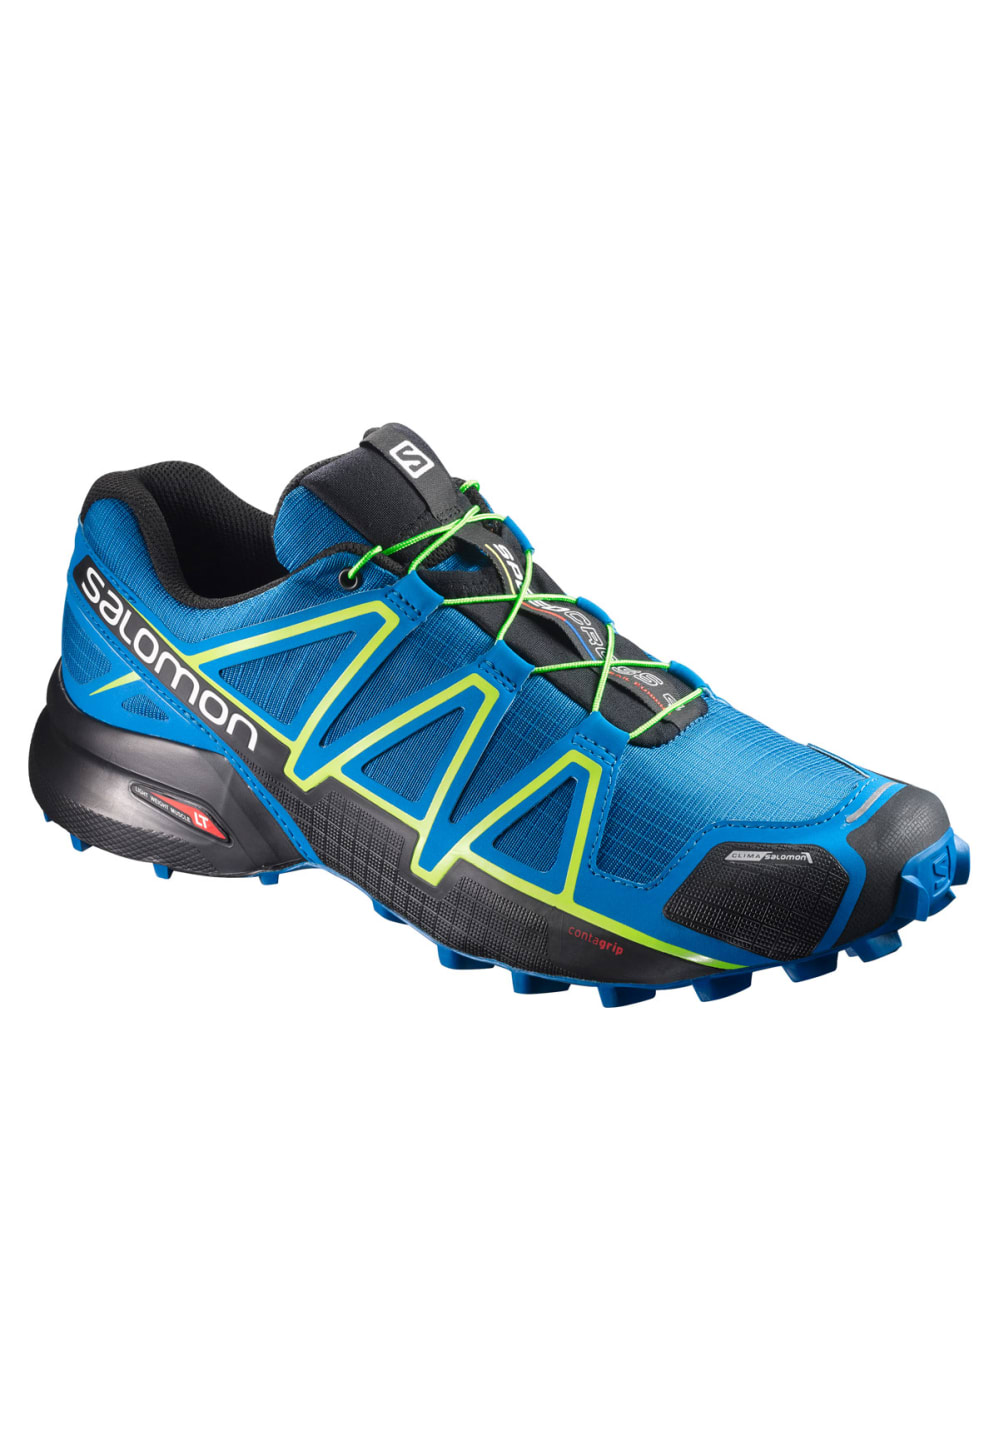 salomon speedcross 4 cs chaussures running pour homme bleu 21run. Black Bedroom Furniture Sets. Home Design Ideas